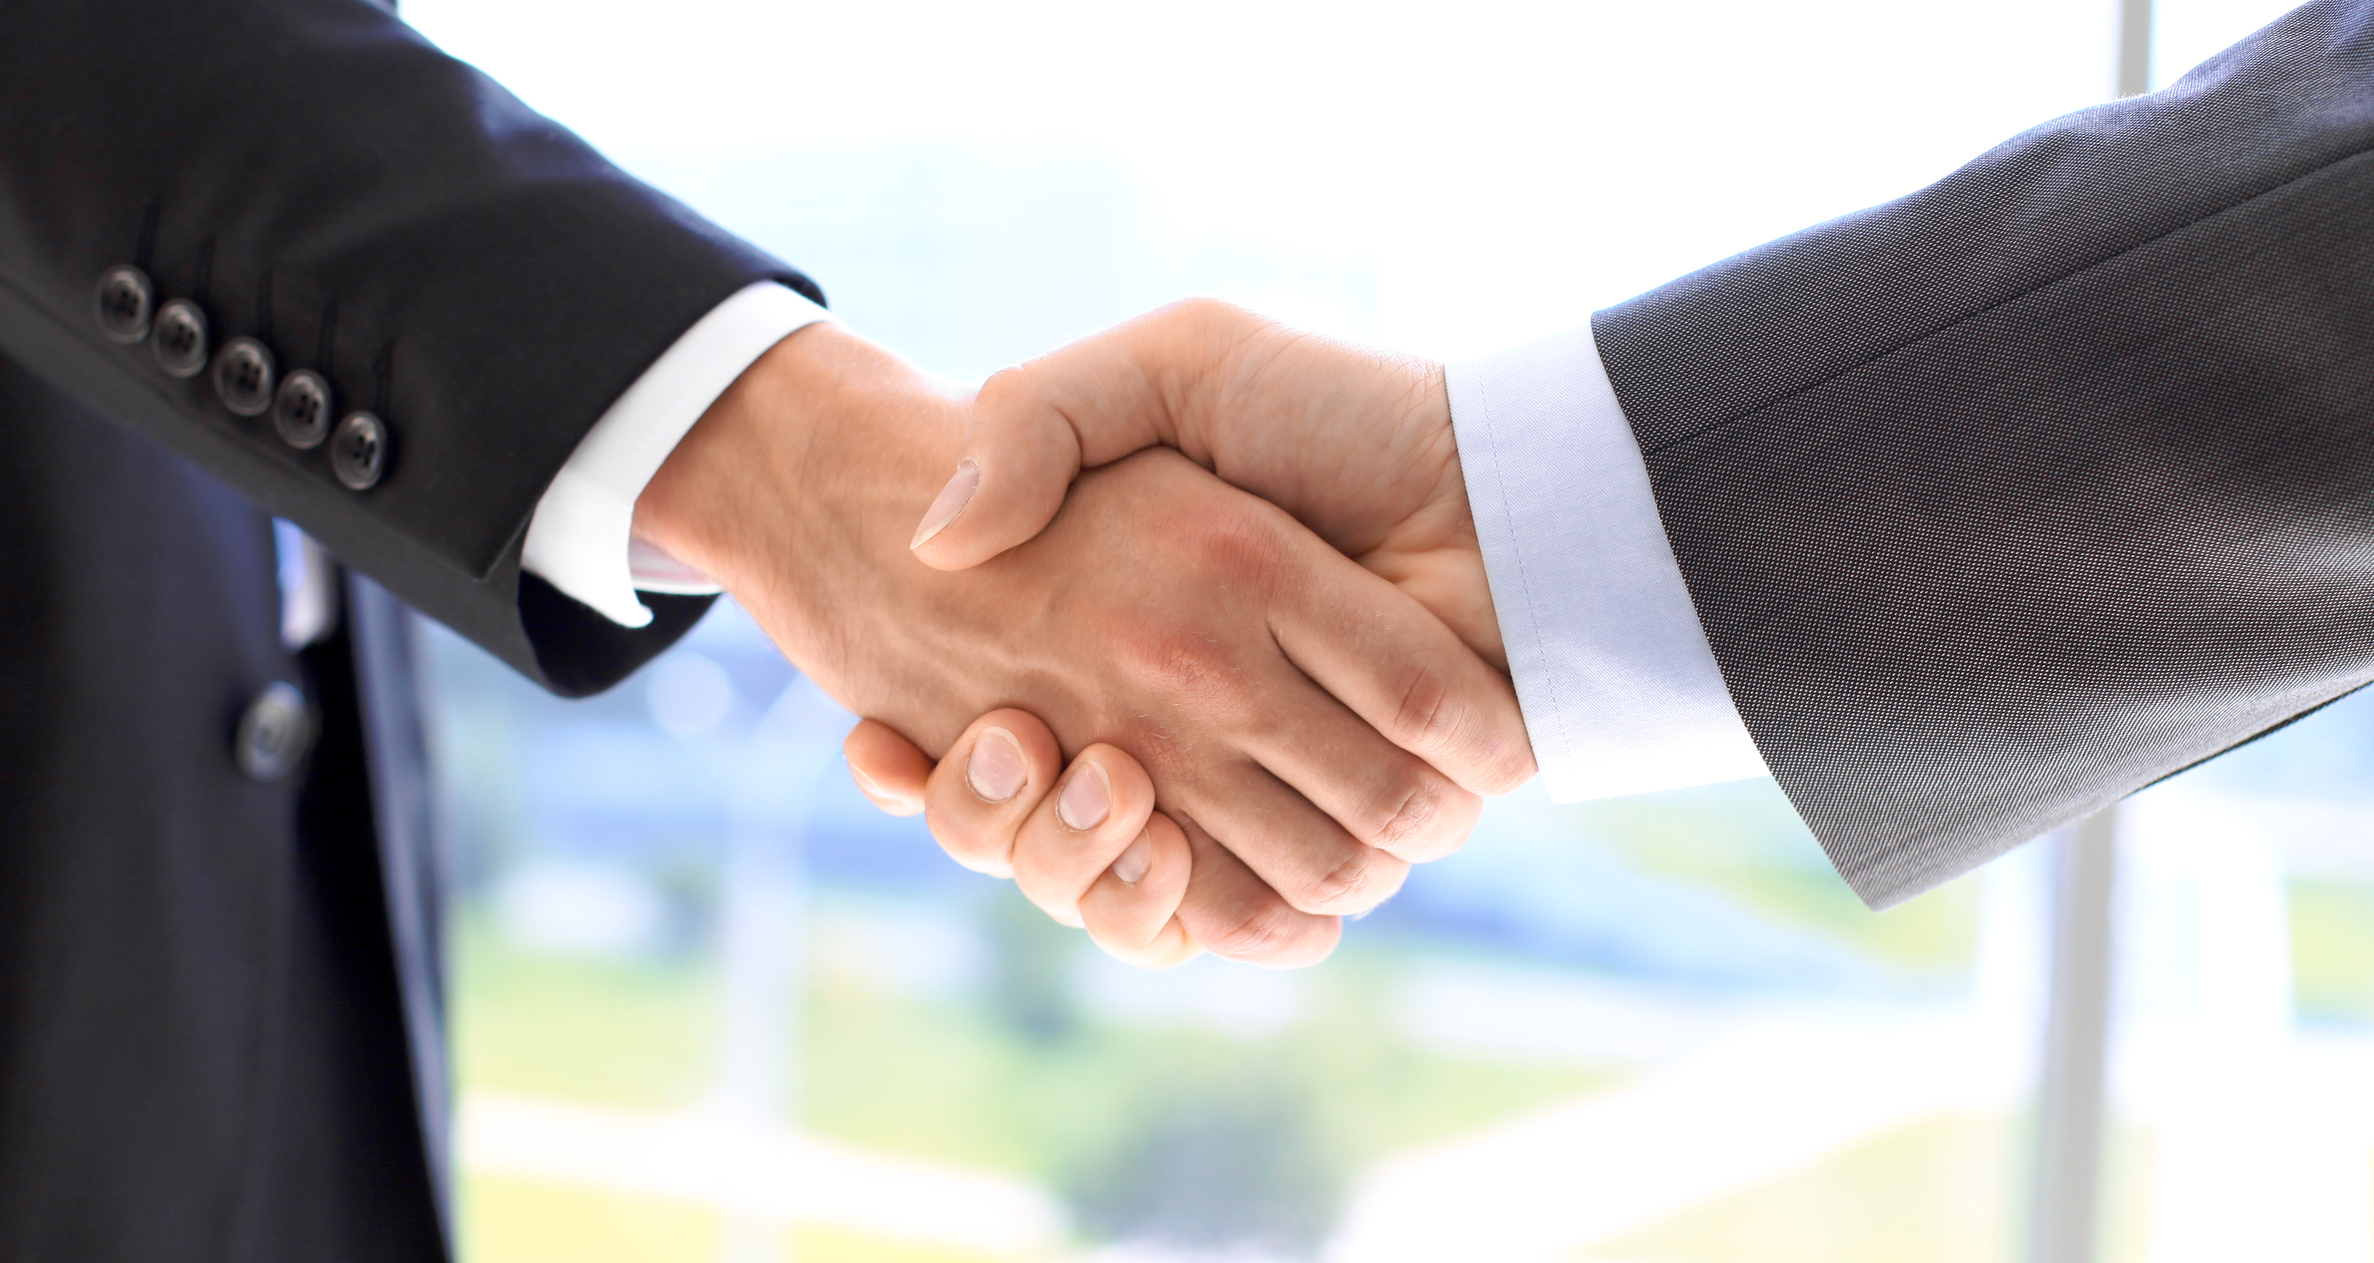 Business people shaking hands as a sign of agreement. Success concept.